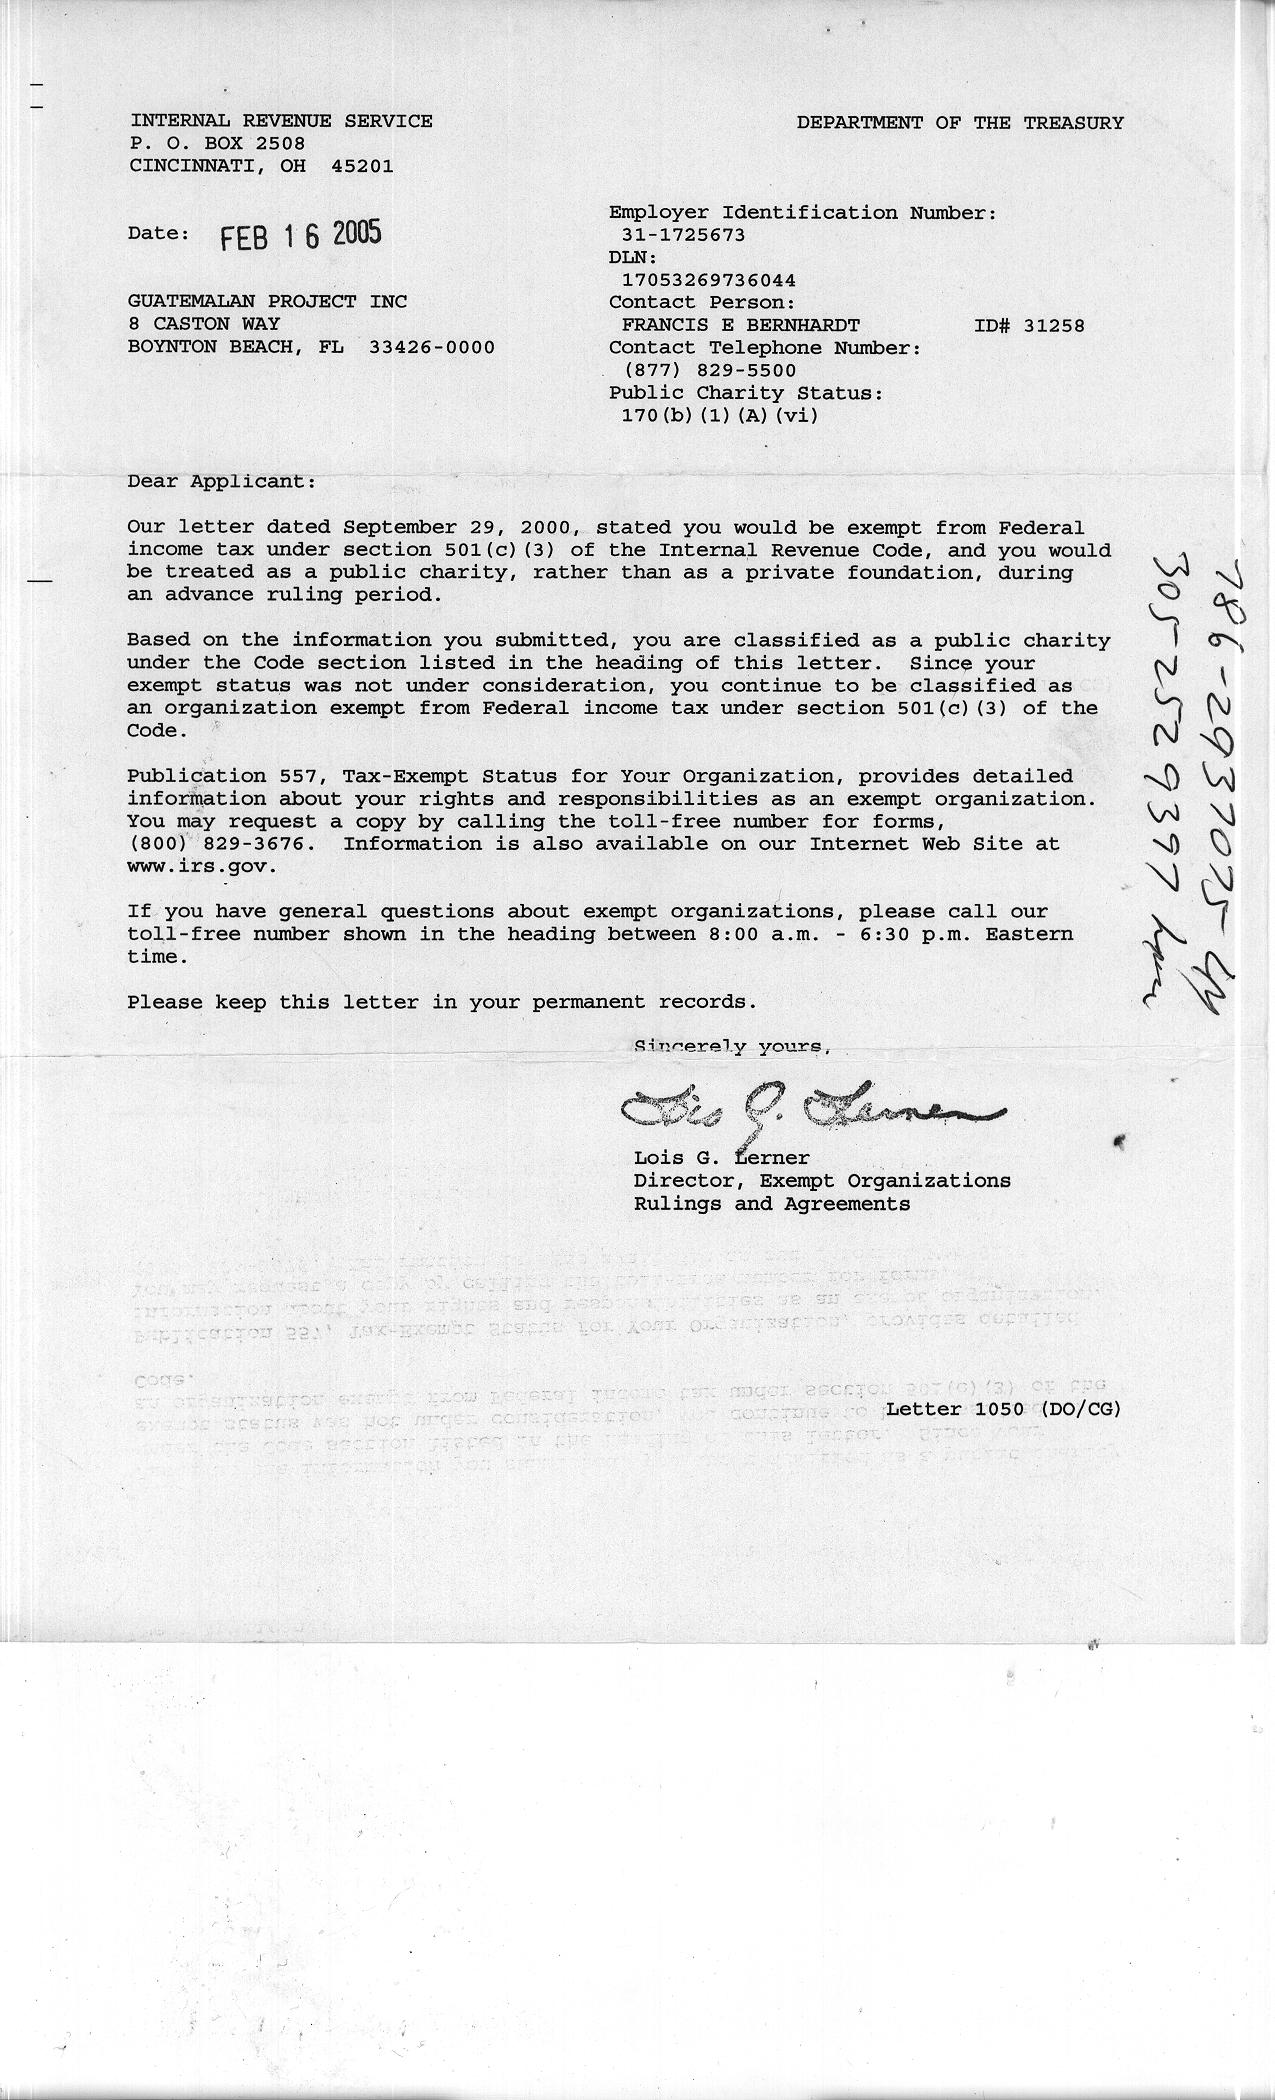 Legal guatemalan project usa irs tax exemption letter xflitez Image collections